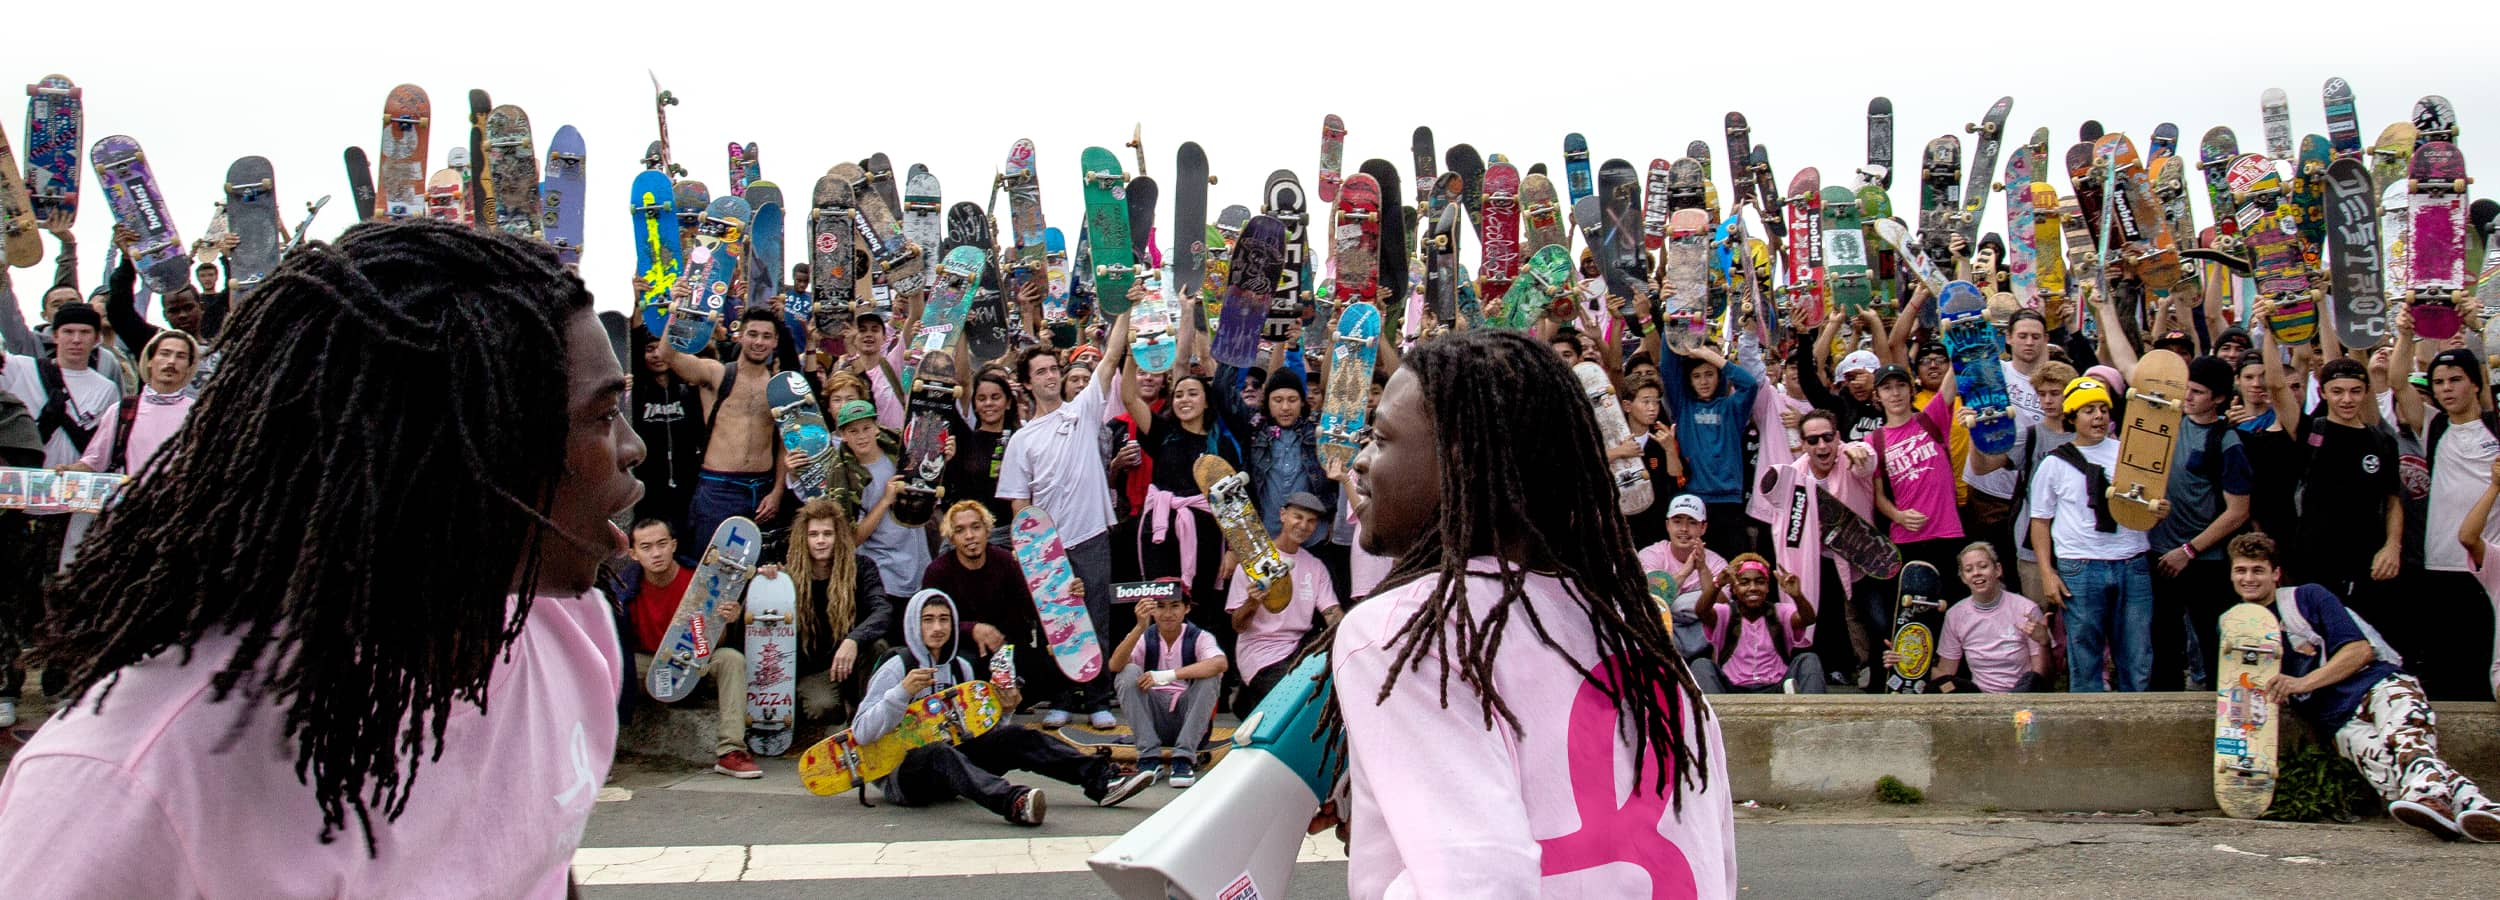 A group photo of skateboarders holding their boards in the air at the end of the 2017 Pushing For Pink event.